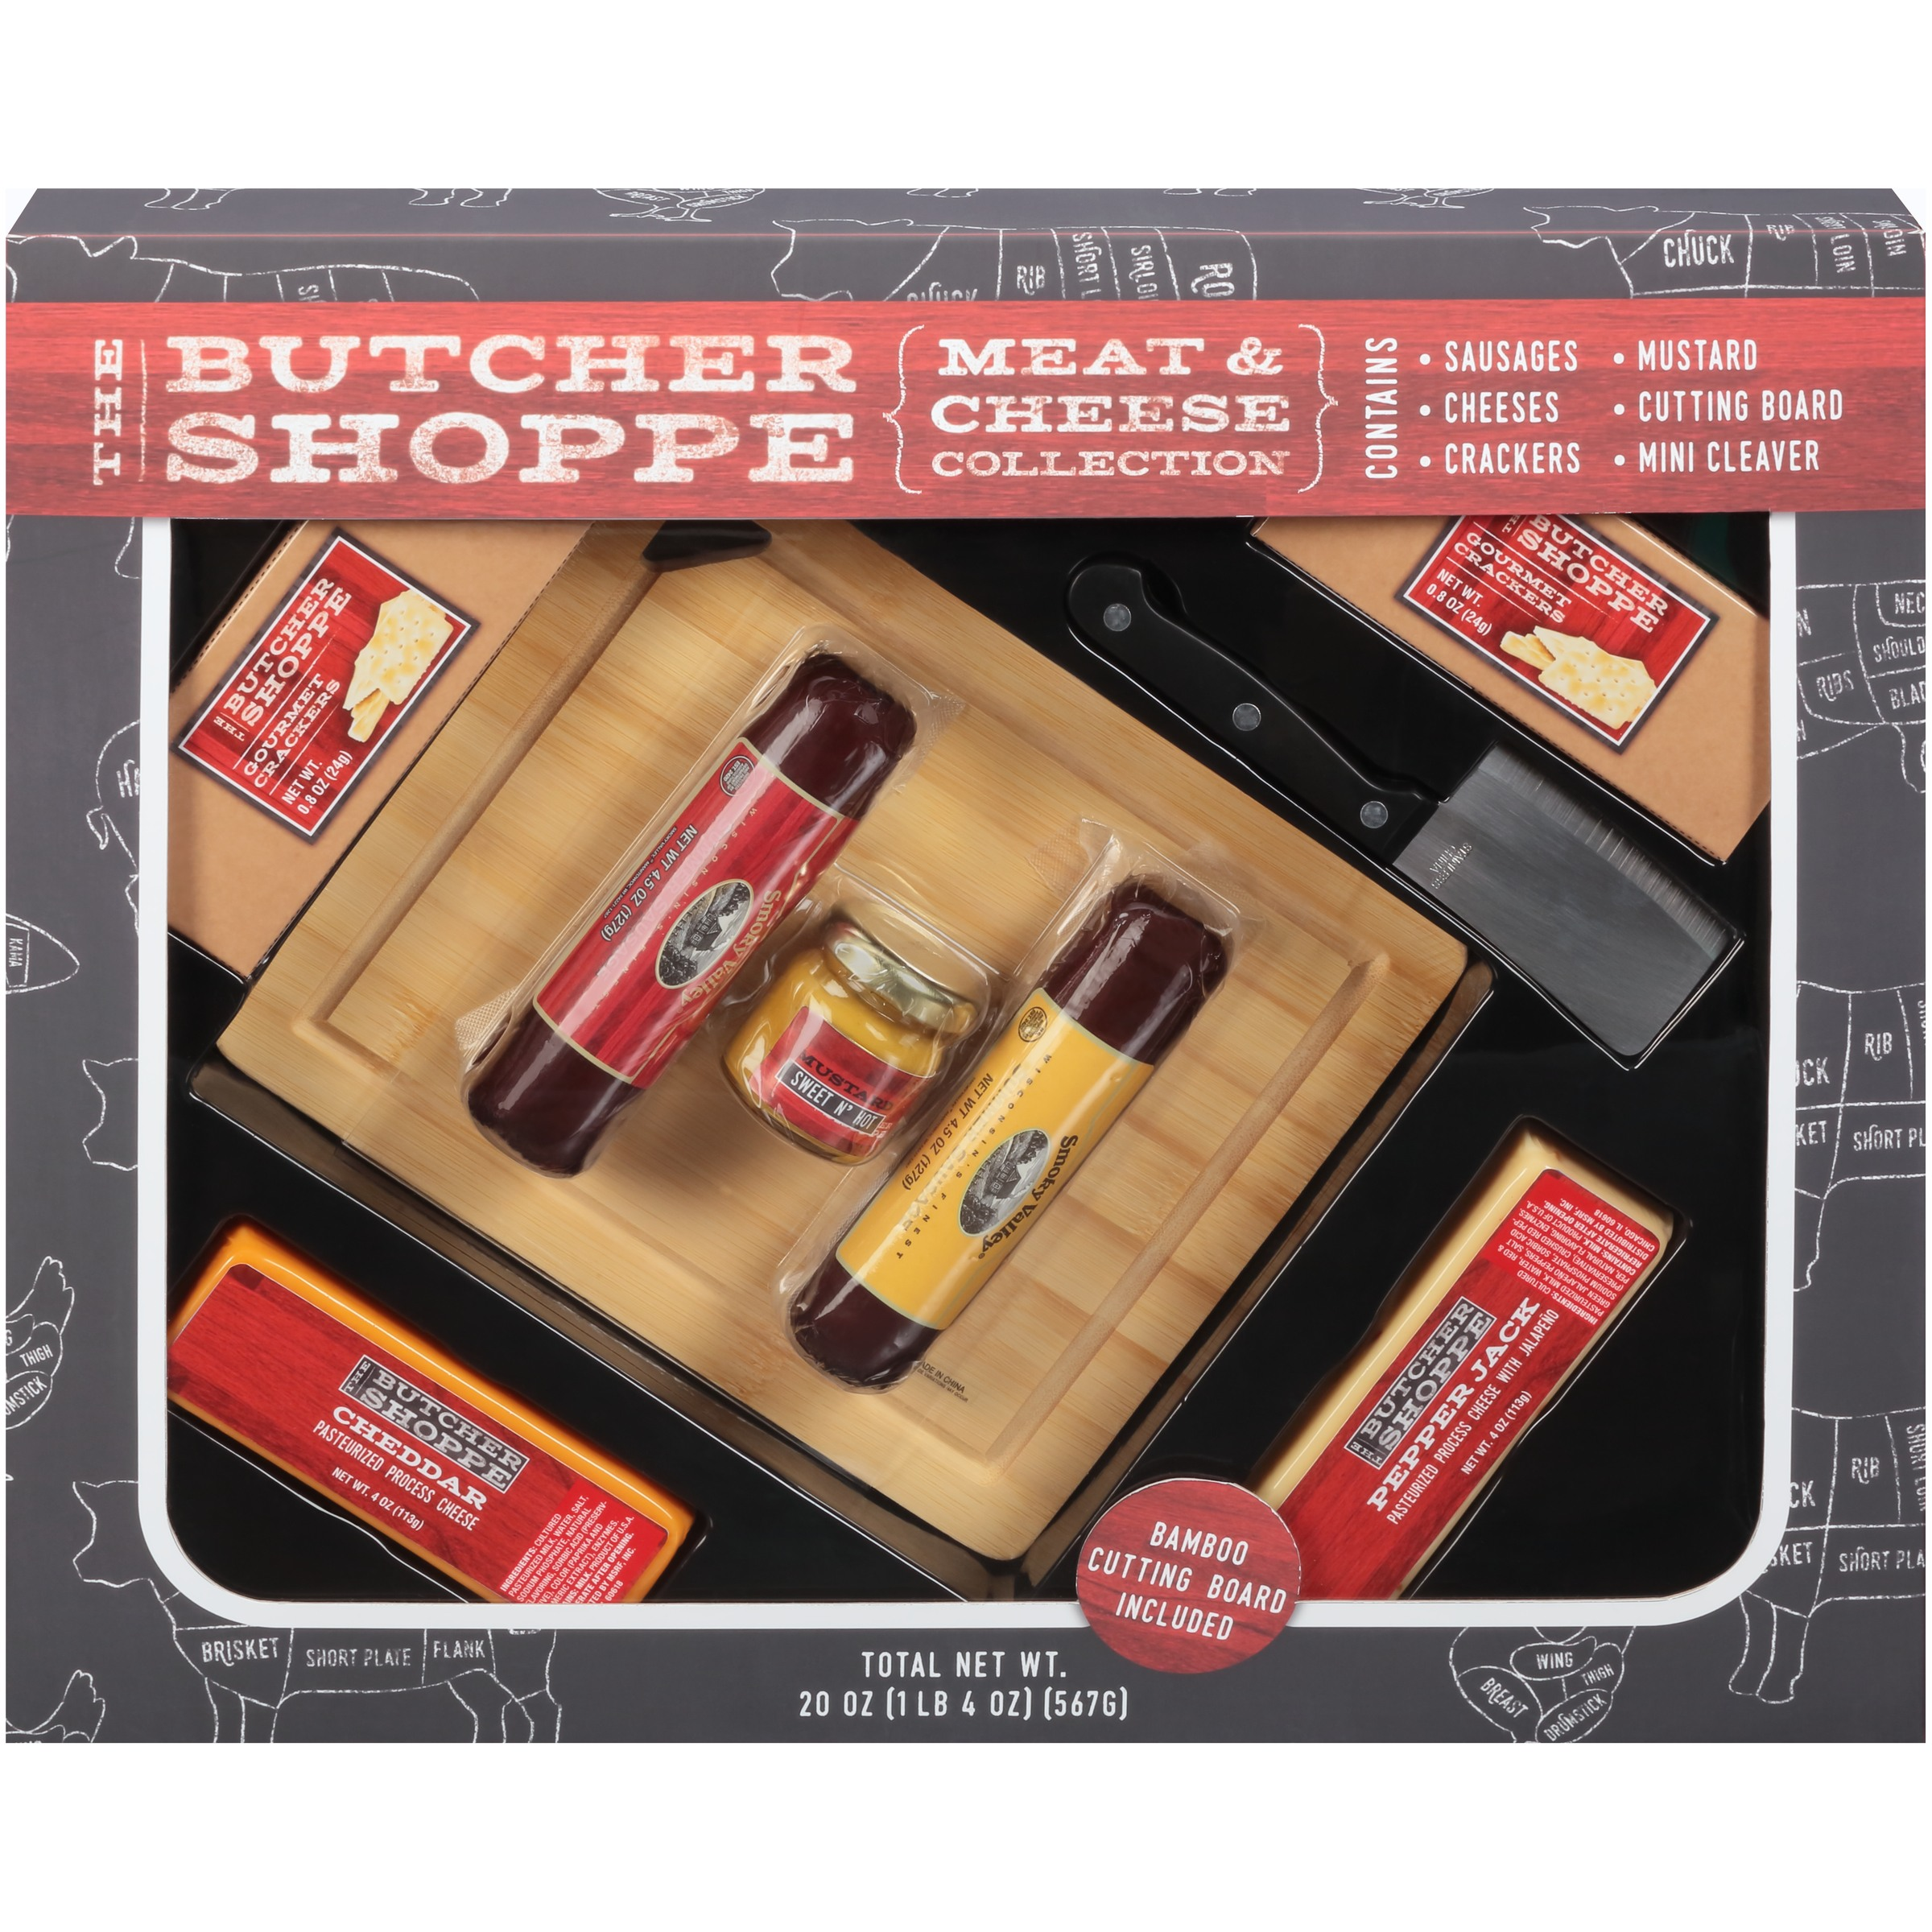 The Butcher Shoppe Meat & Cheese Collection Gift Set 9 pc Box